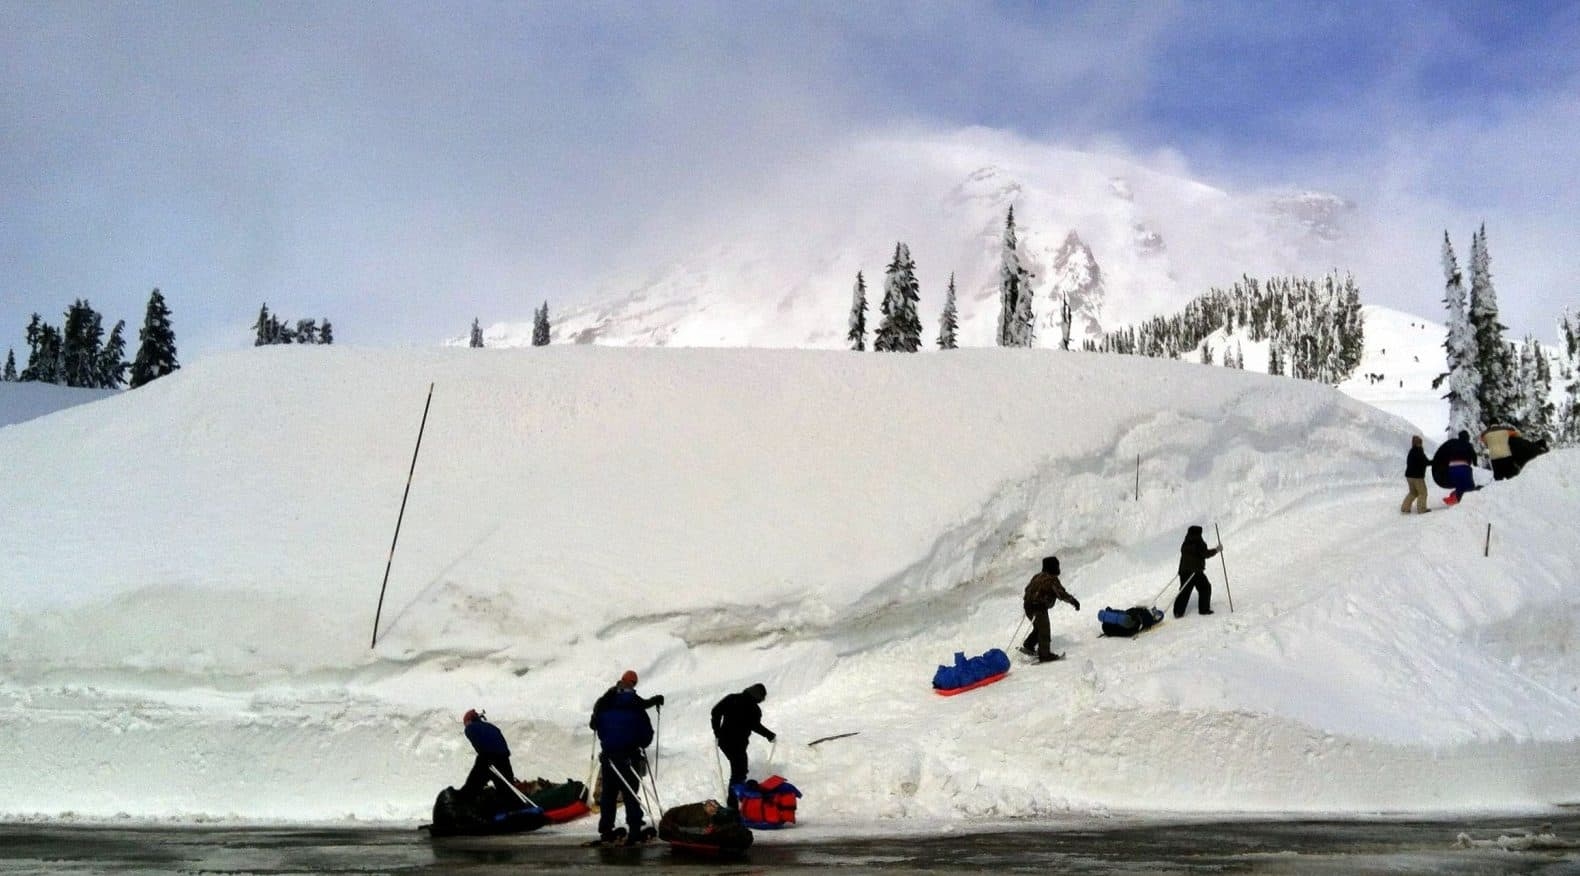 Sledders heading uphill at Paradise Snowplay at Mount Rainier